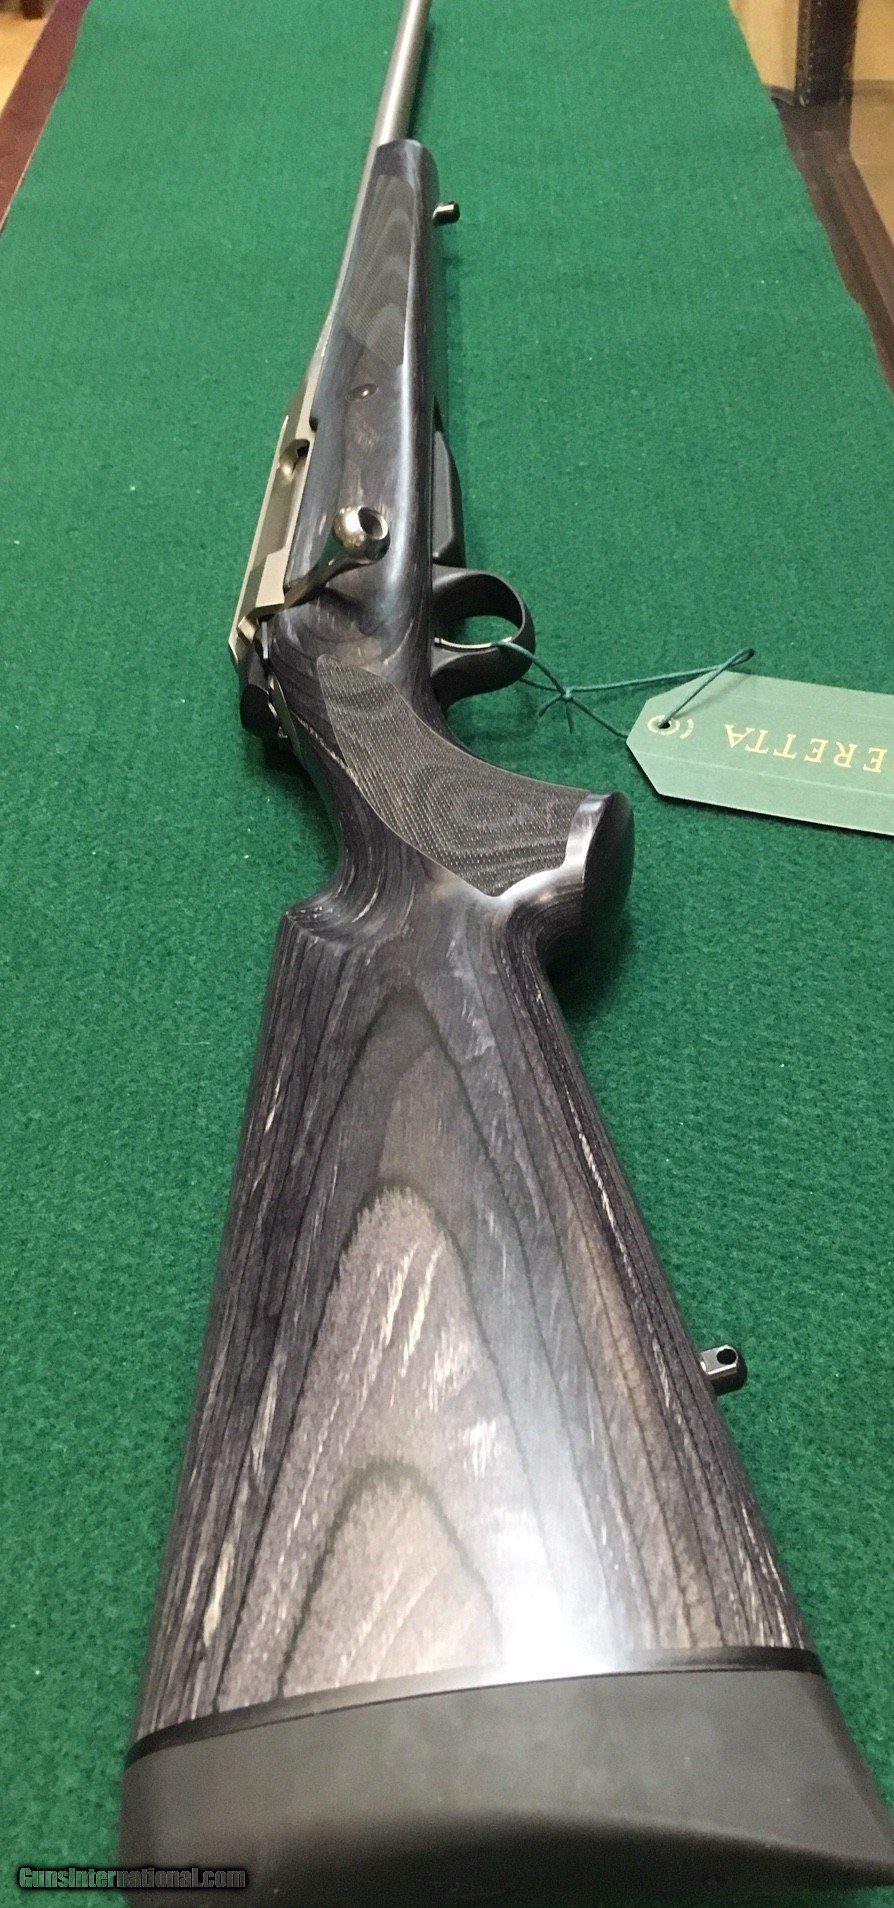 TIKKA T3x LAMINATED STAINLESS  308 WIN for sale